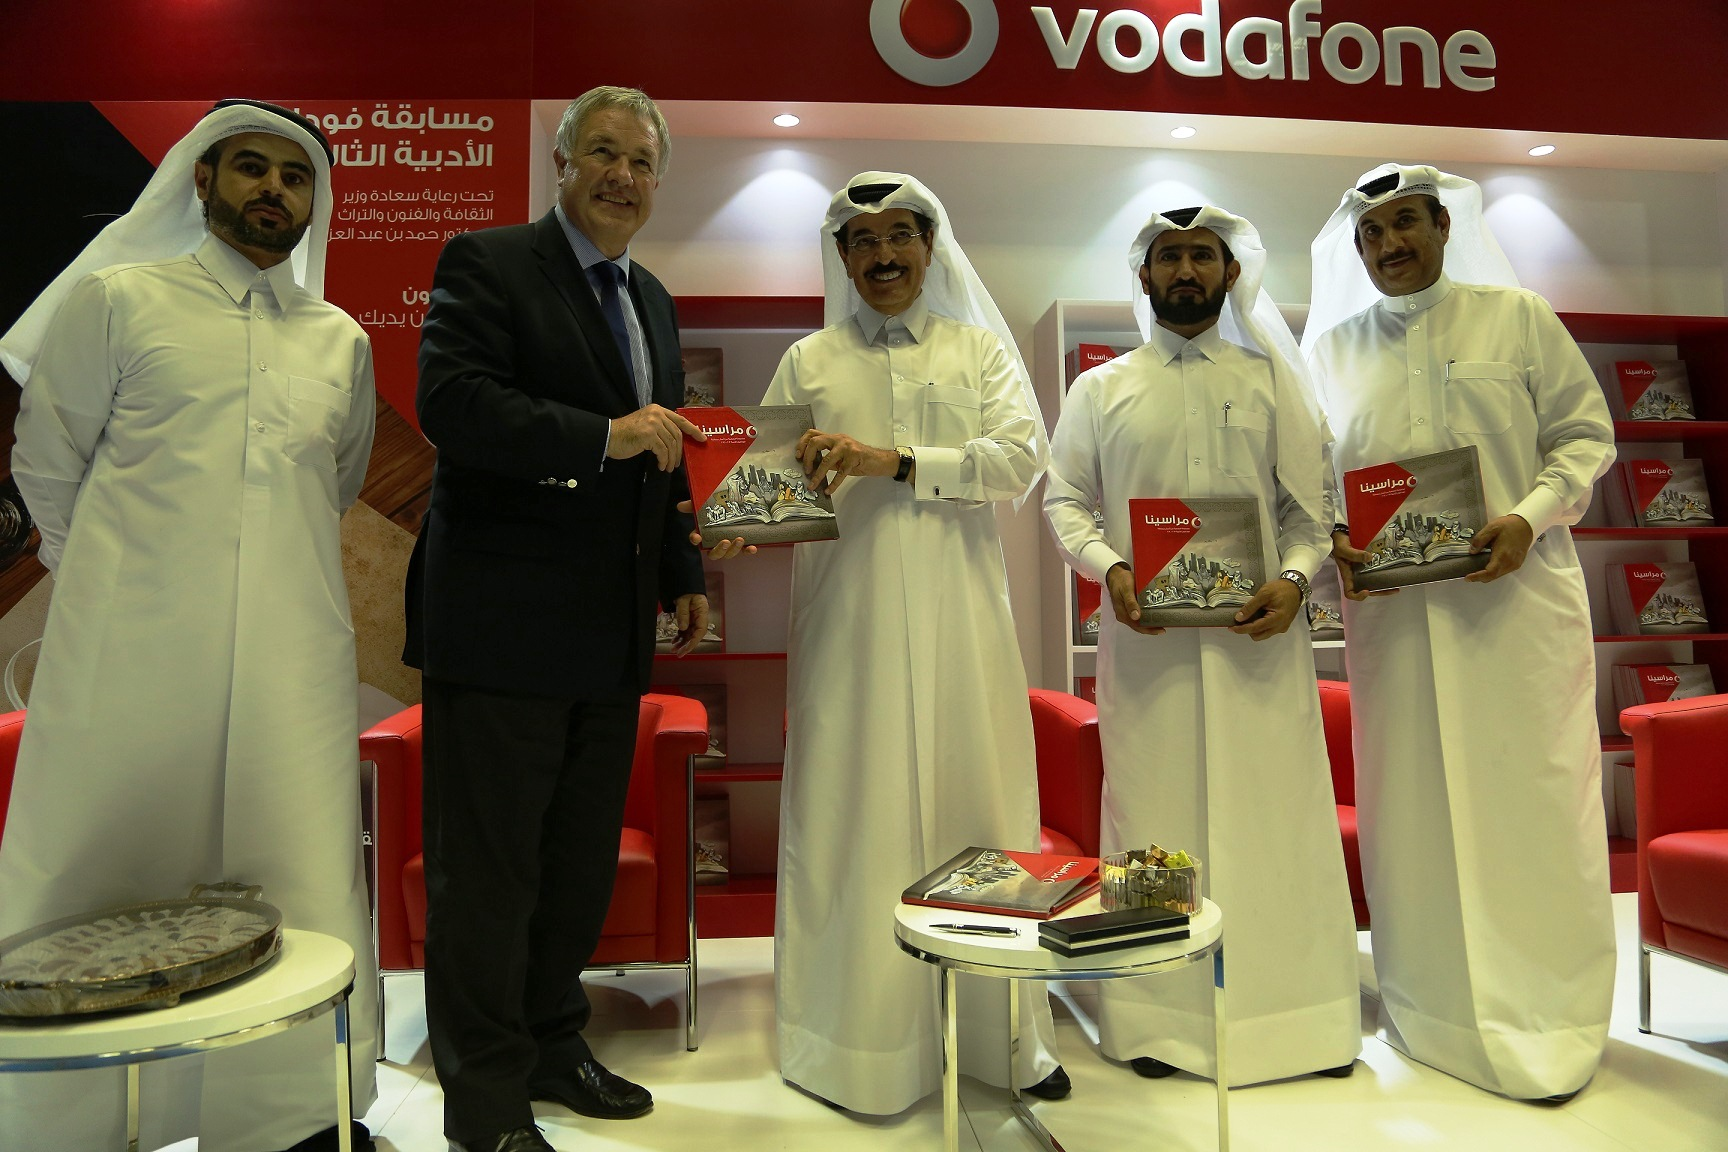 VODAFONE LAUNCHED THIRD LITERARY COMPETITION_PR_E_051215.JPG